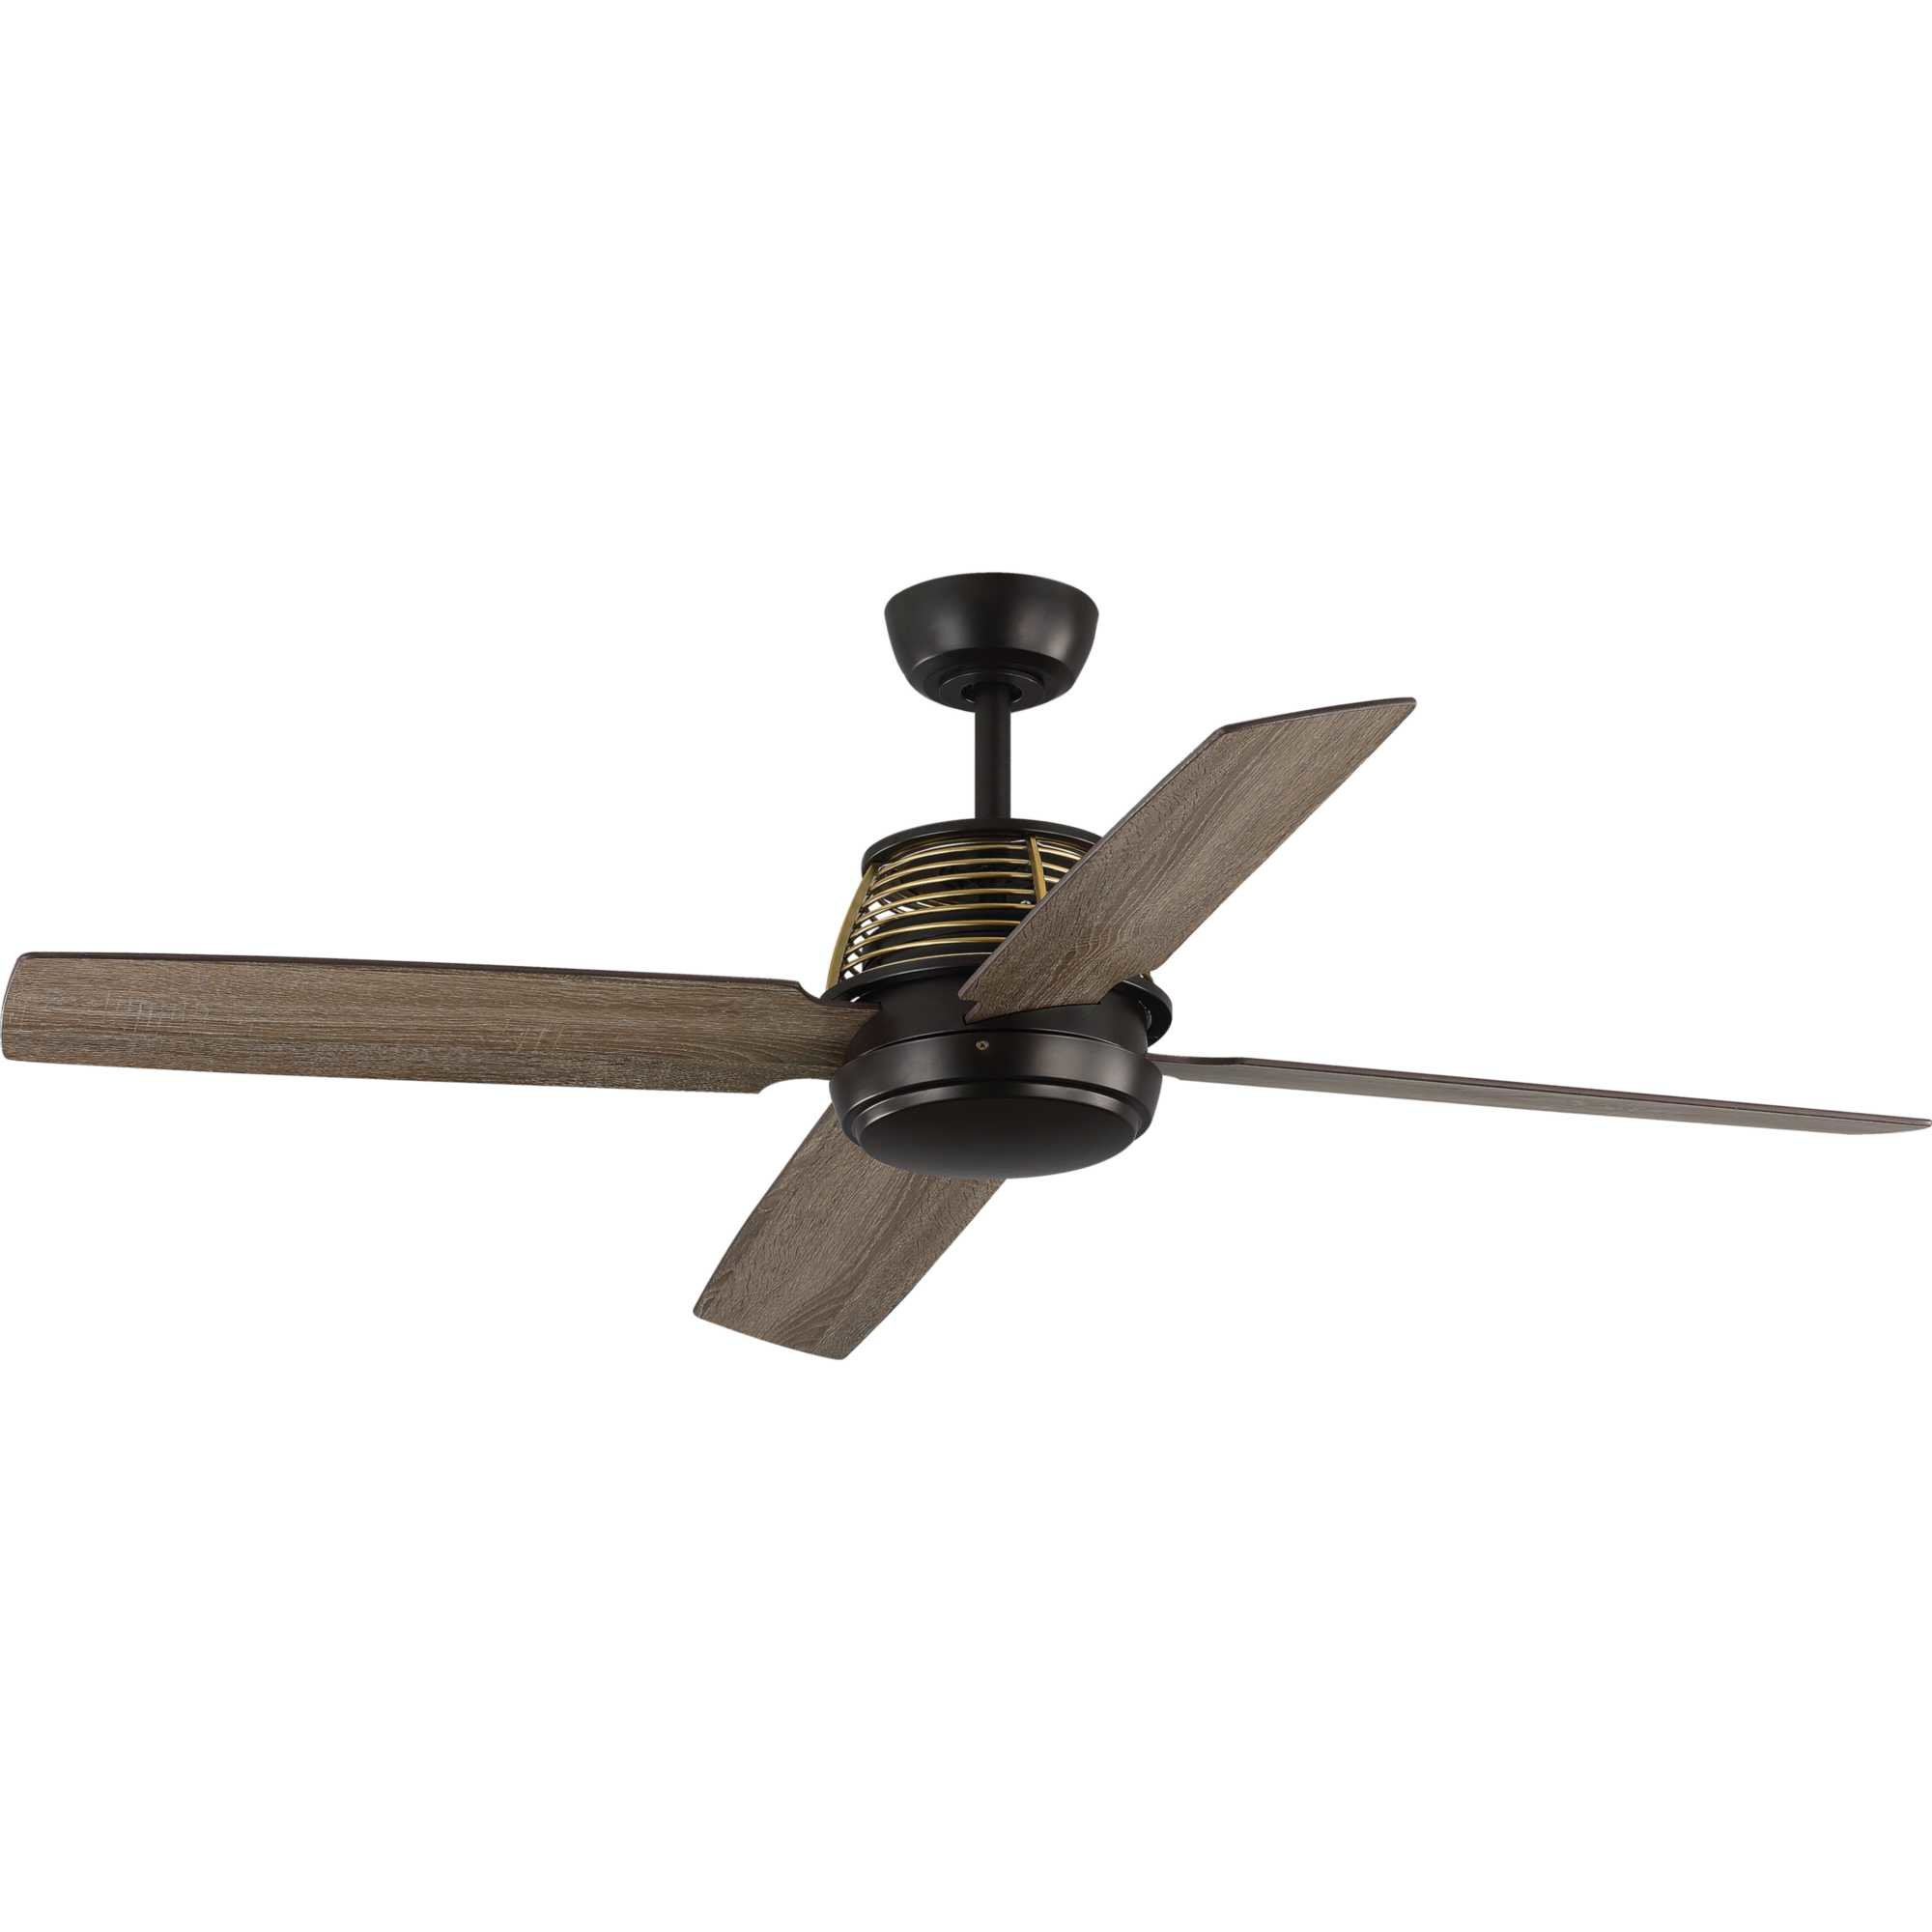 "Morton 3 Blade Ceiling Fans For Widely Used 56"" Arine 4 Blade Ceiling Fan With Remote (View 7 of 20)"